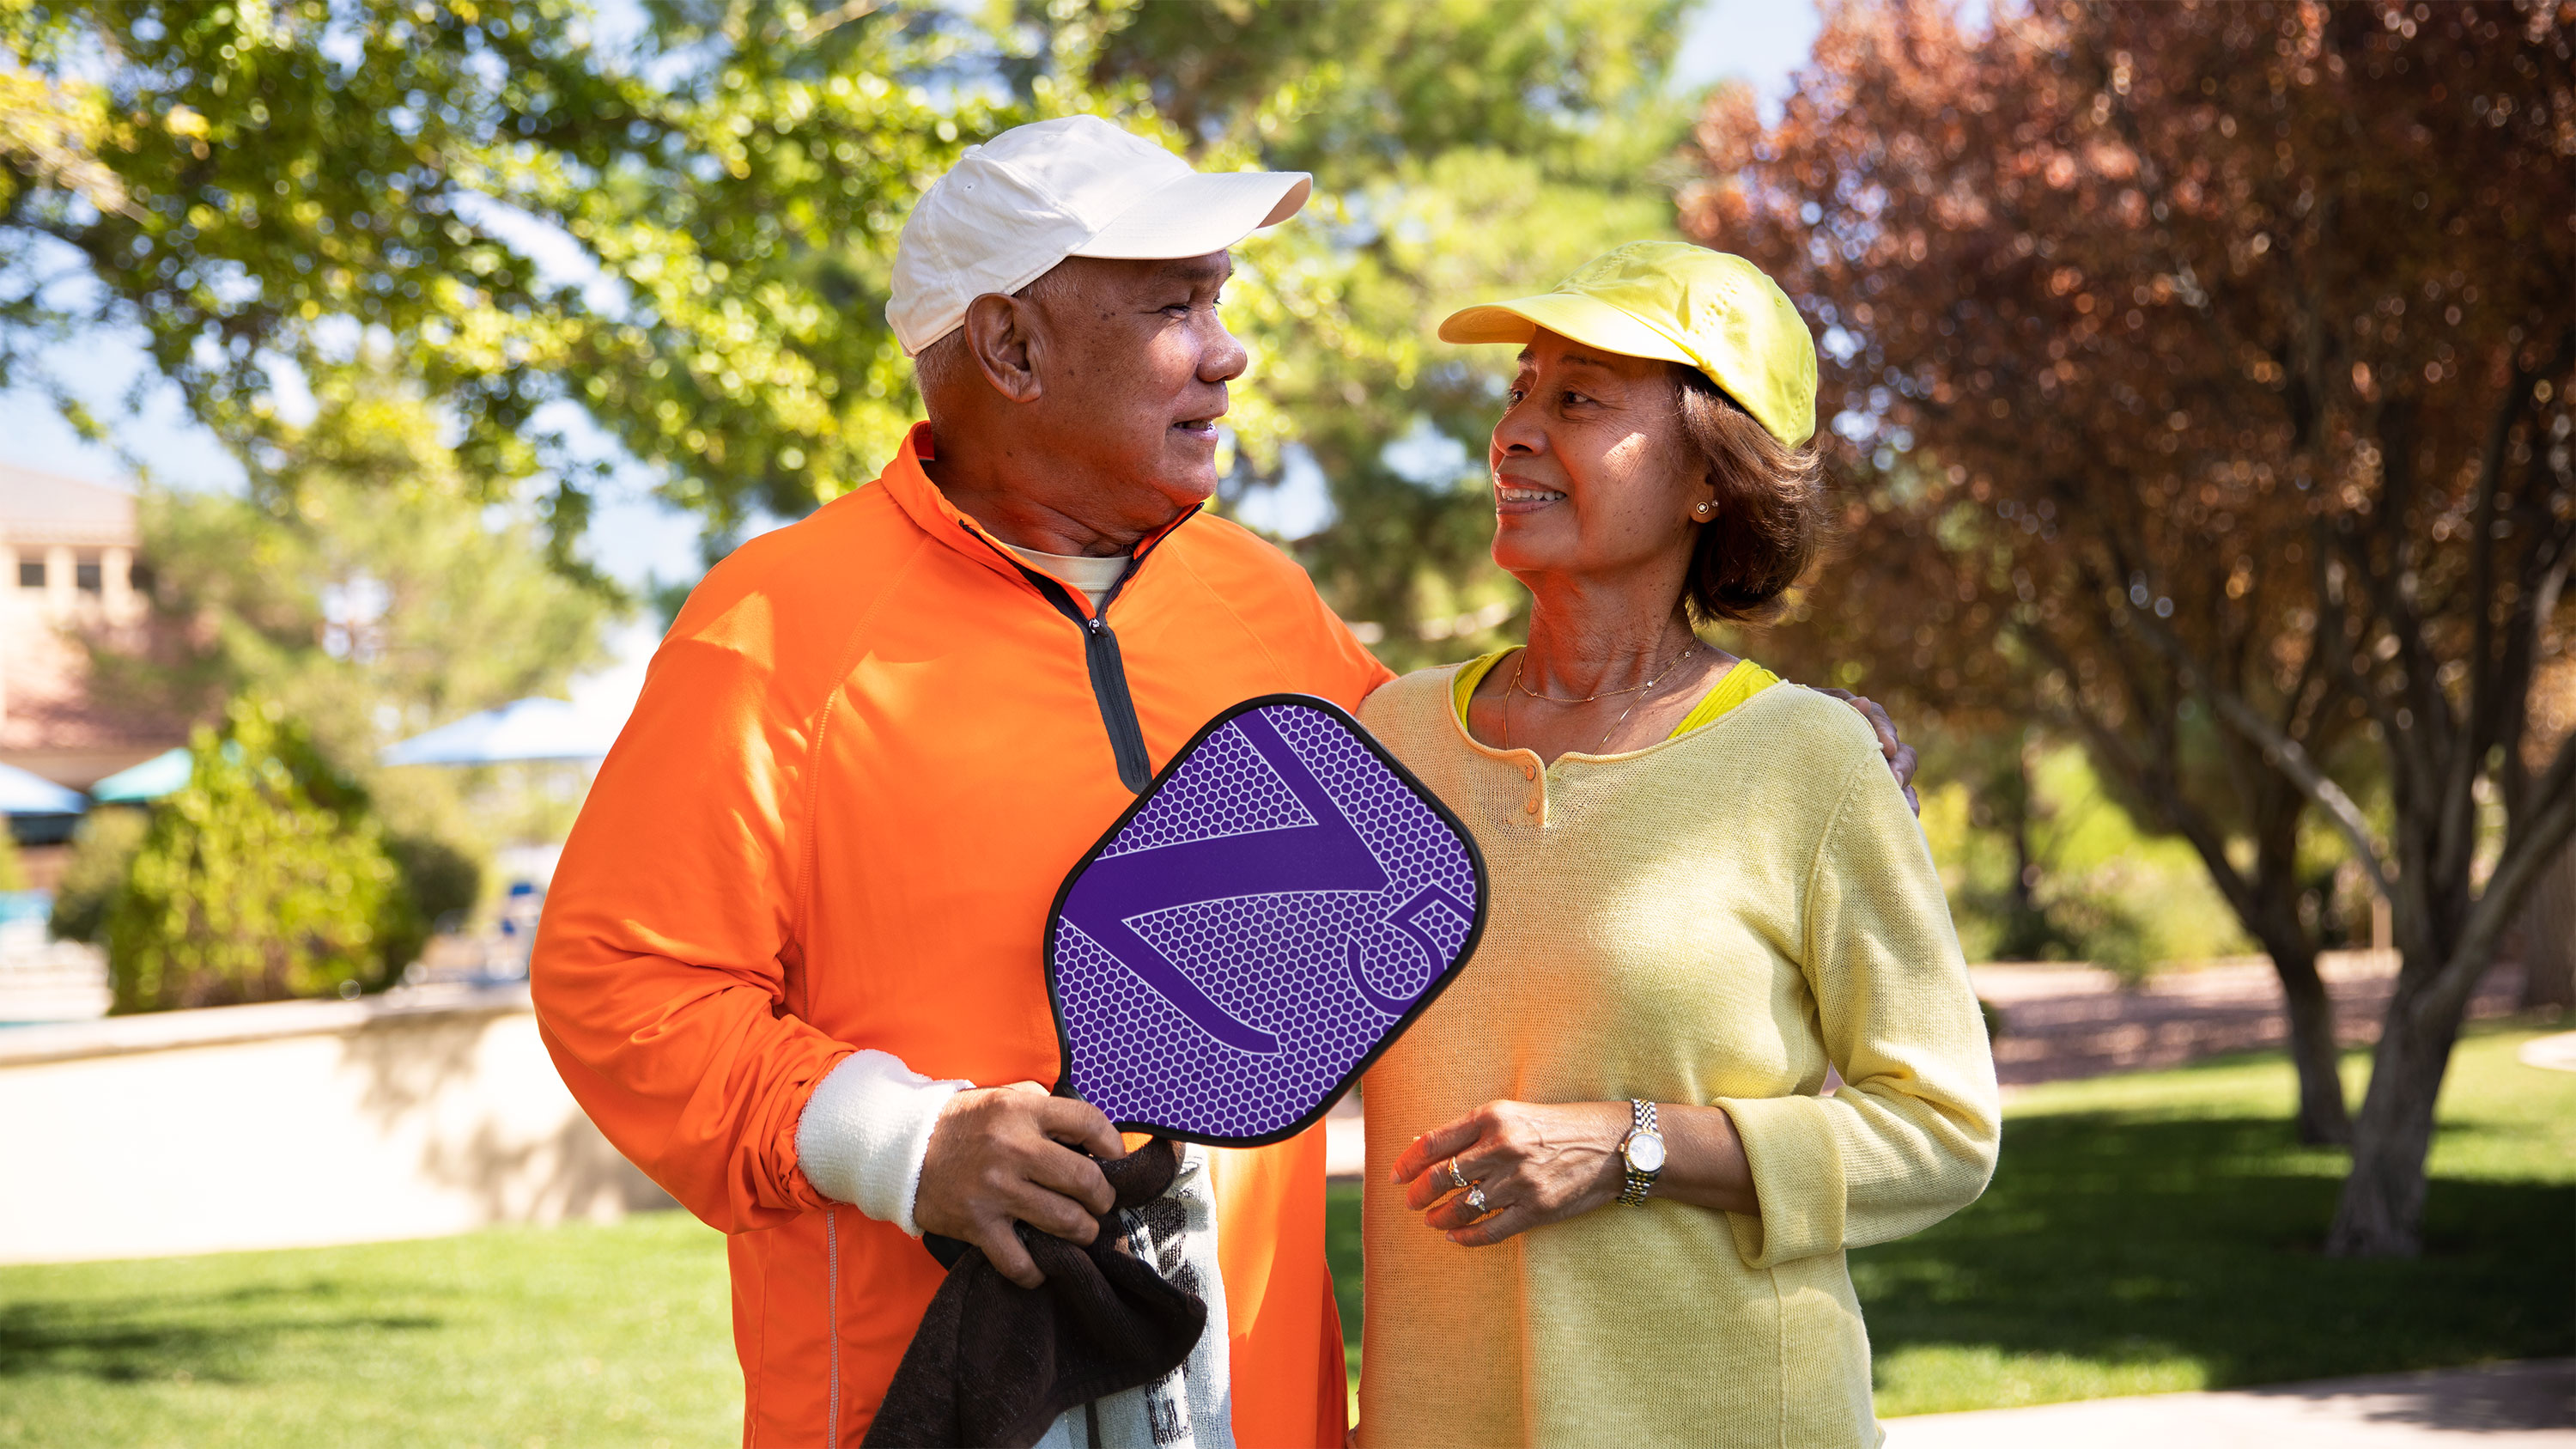 A mature male and female couple, dressed in brightly-colored athletic clothing, play paddleball outdoor on an autumn days.